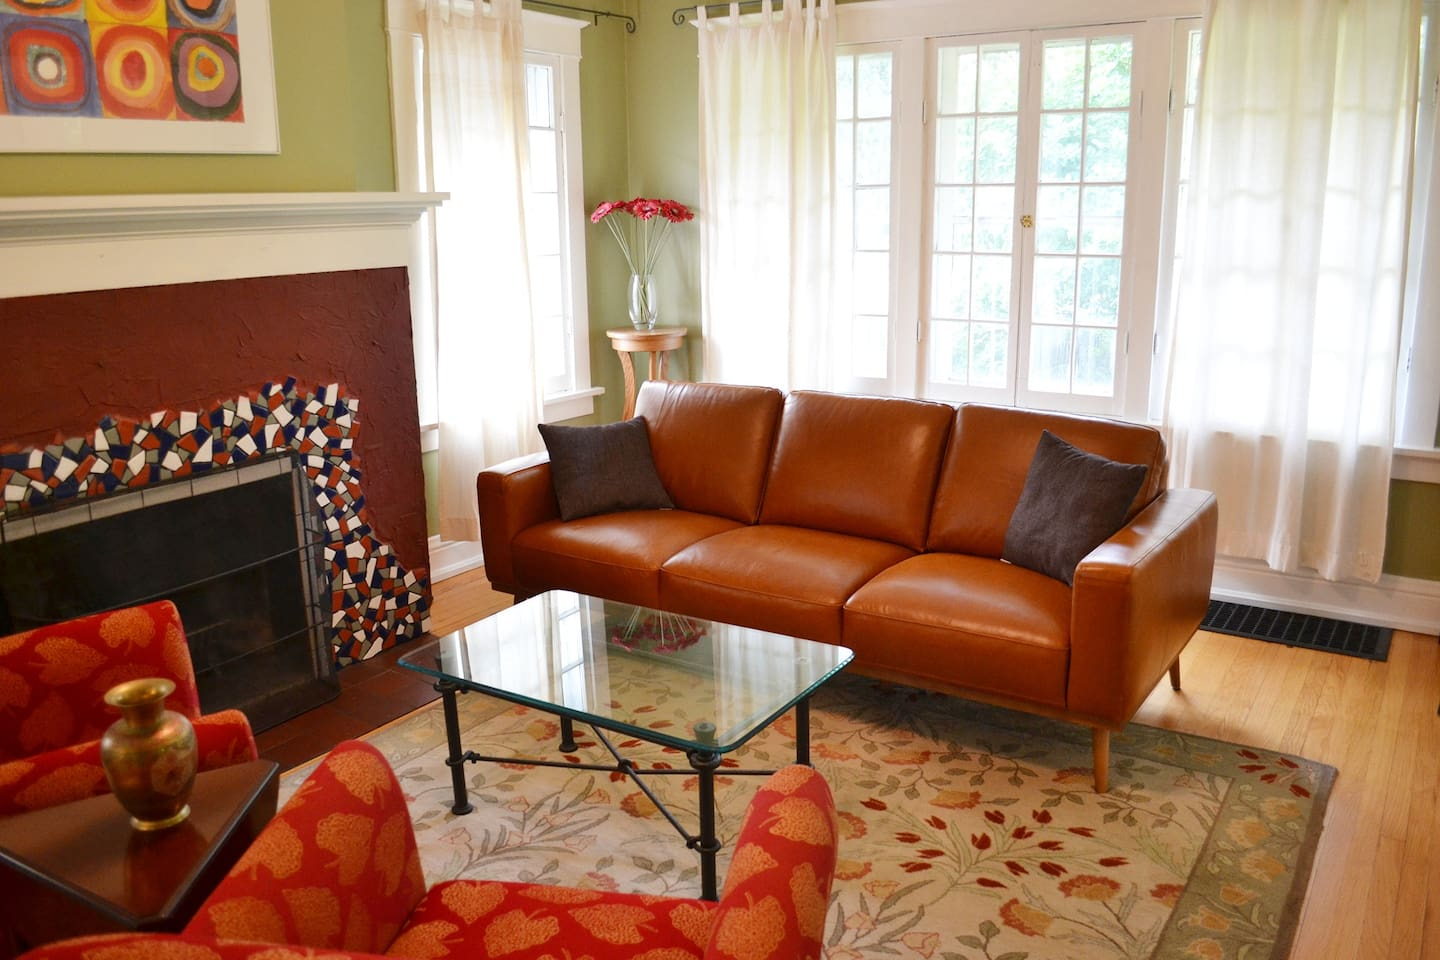 Enjoy the new furniture - we just updated in Aug 2018.